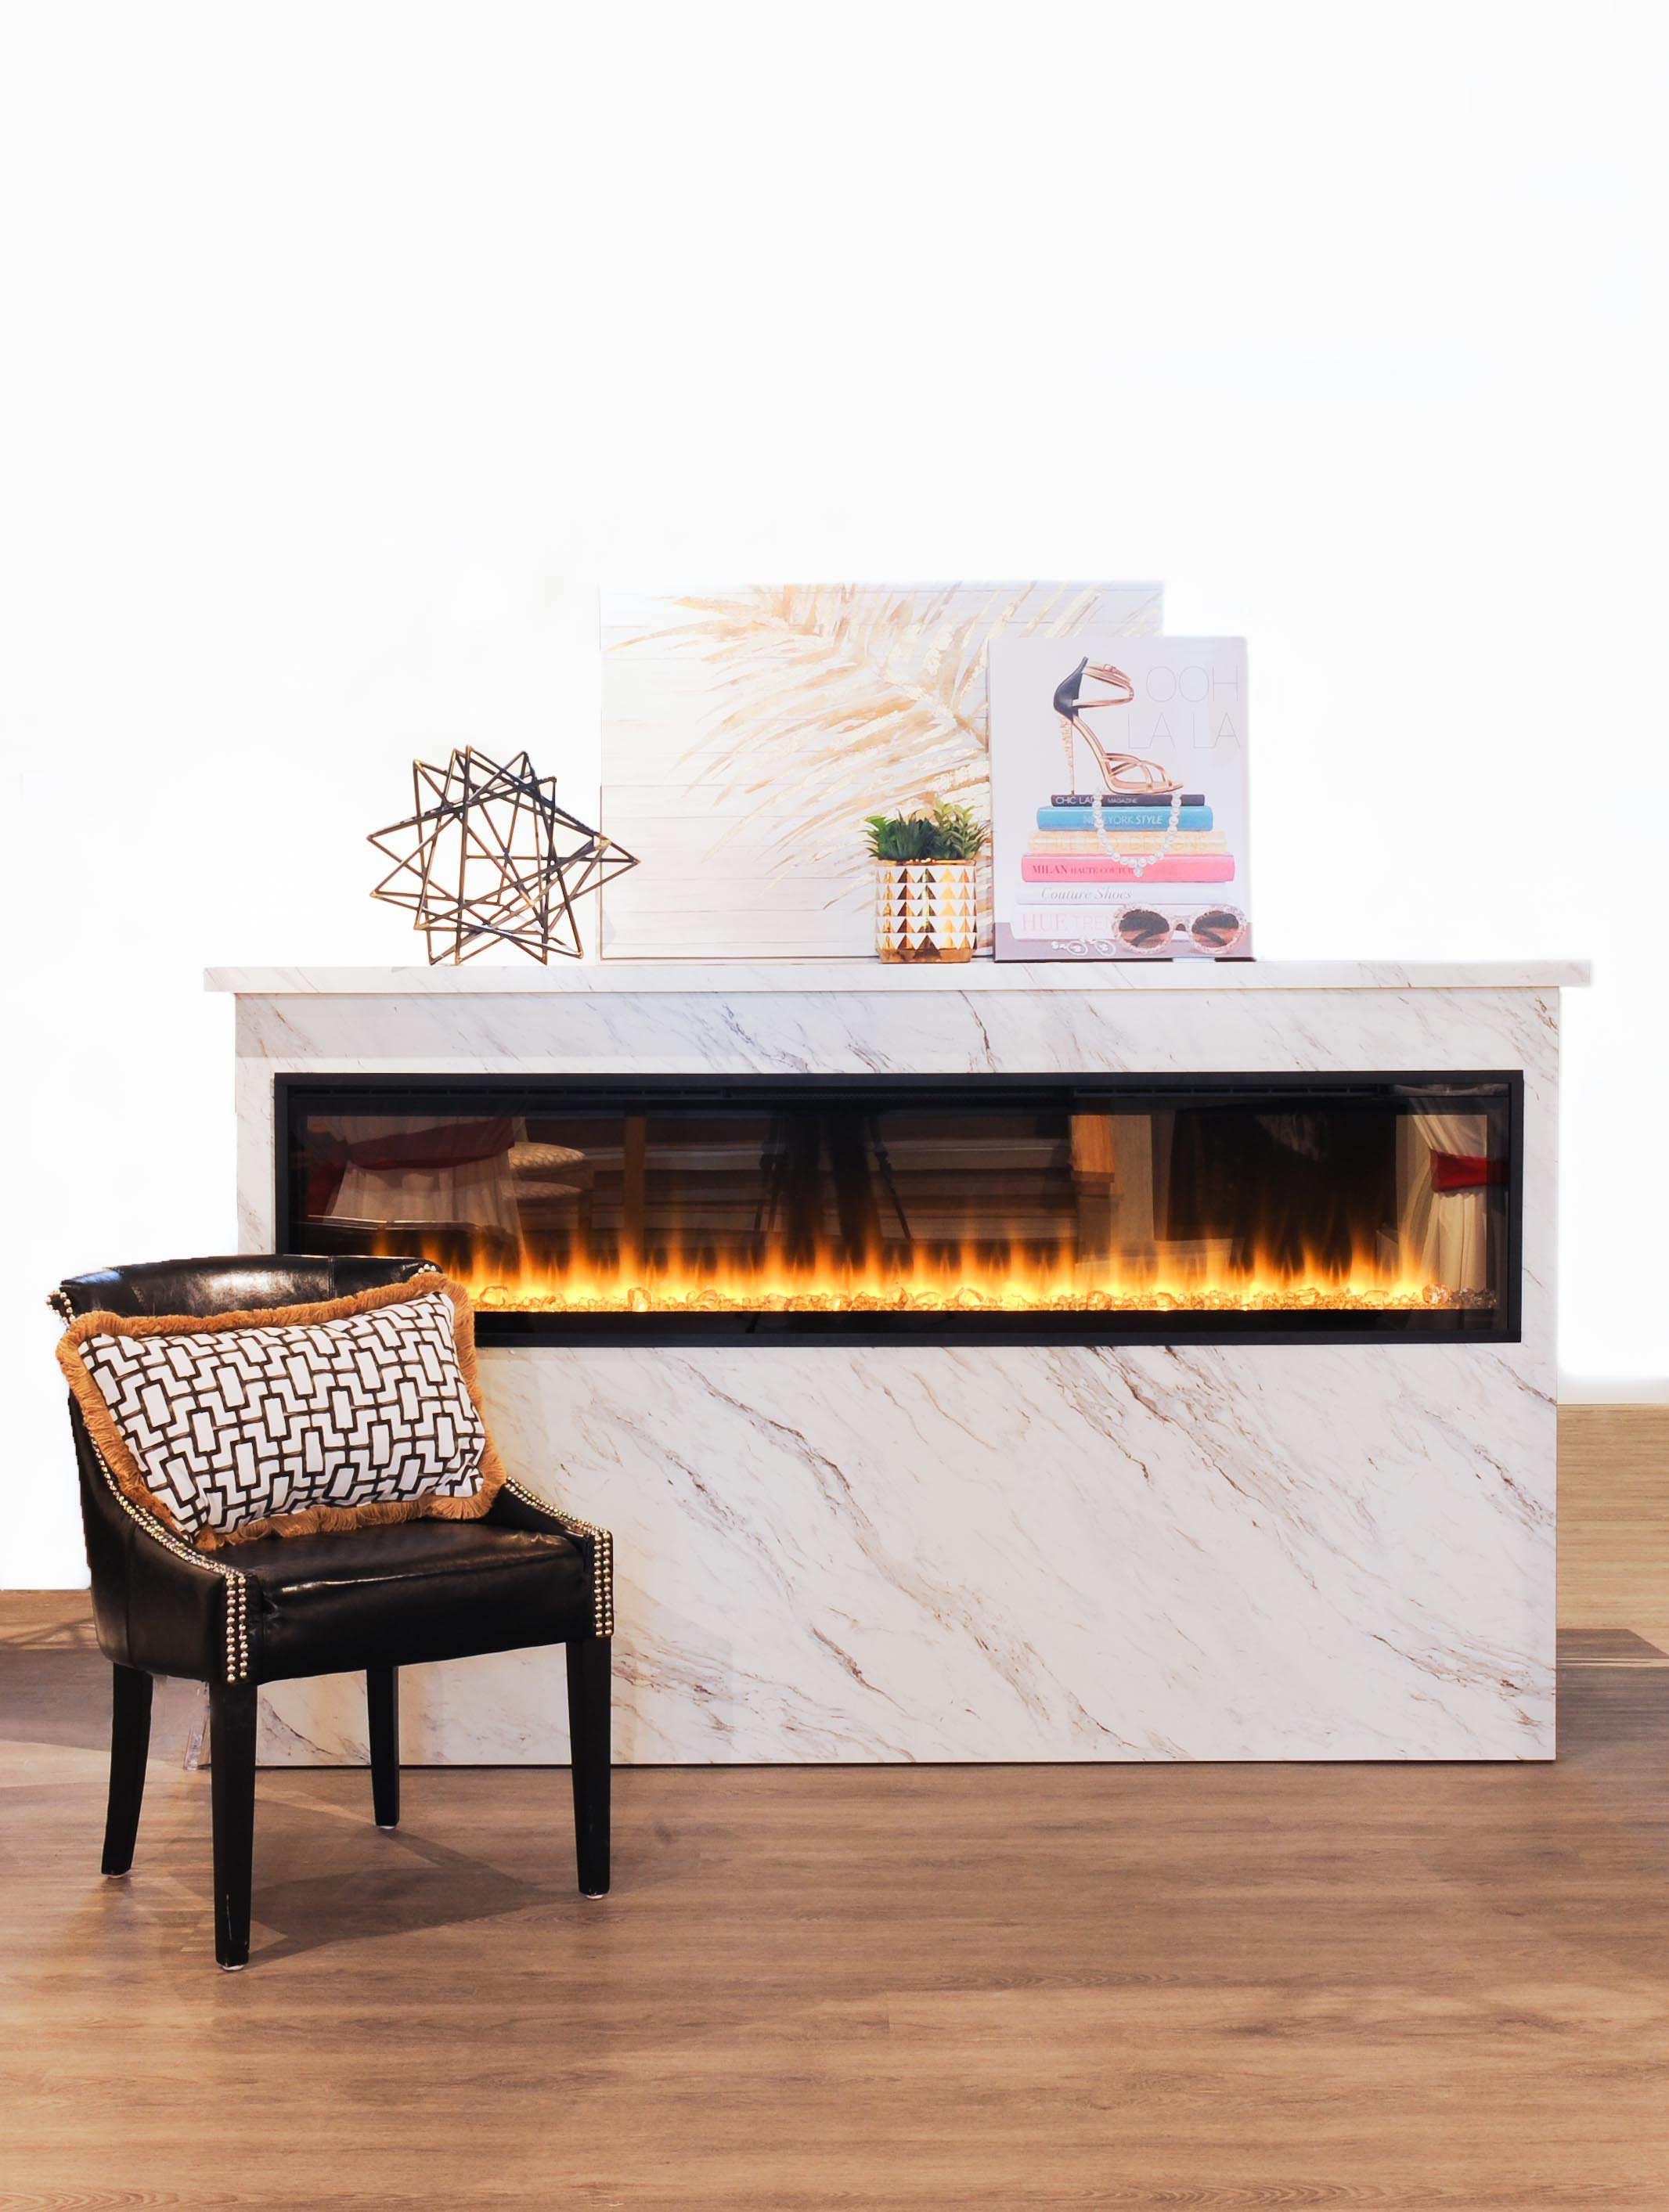 w lg tv oh dealer best ashley store stand fireplace option mentor furniture product evanni